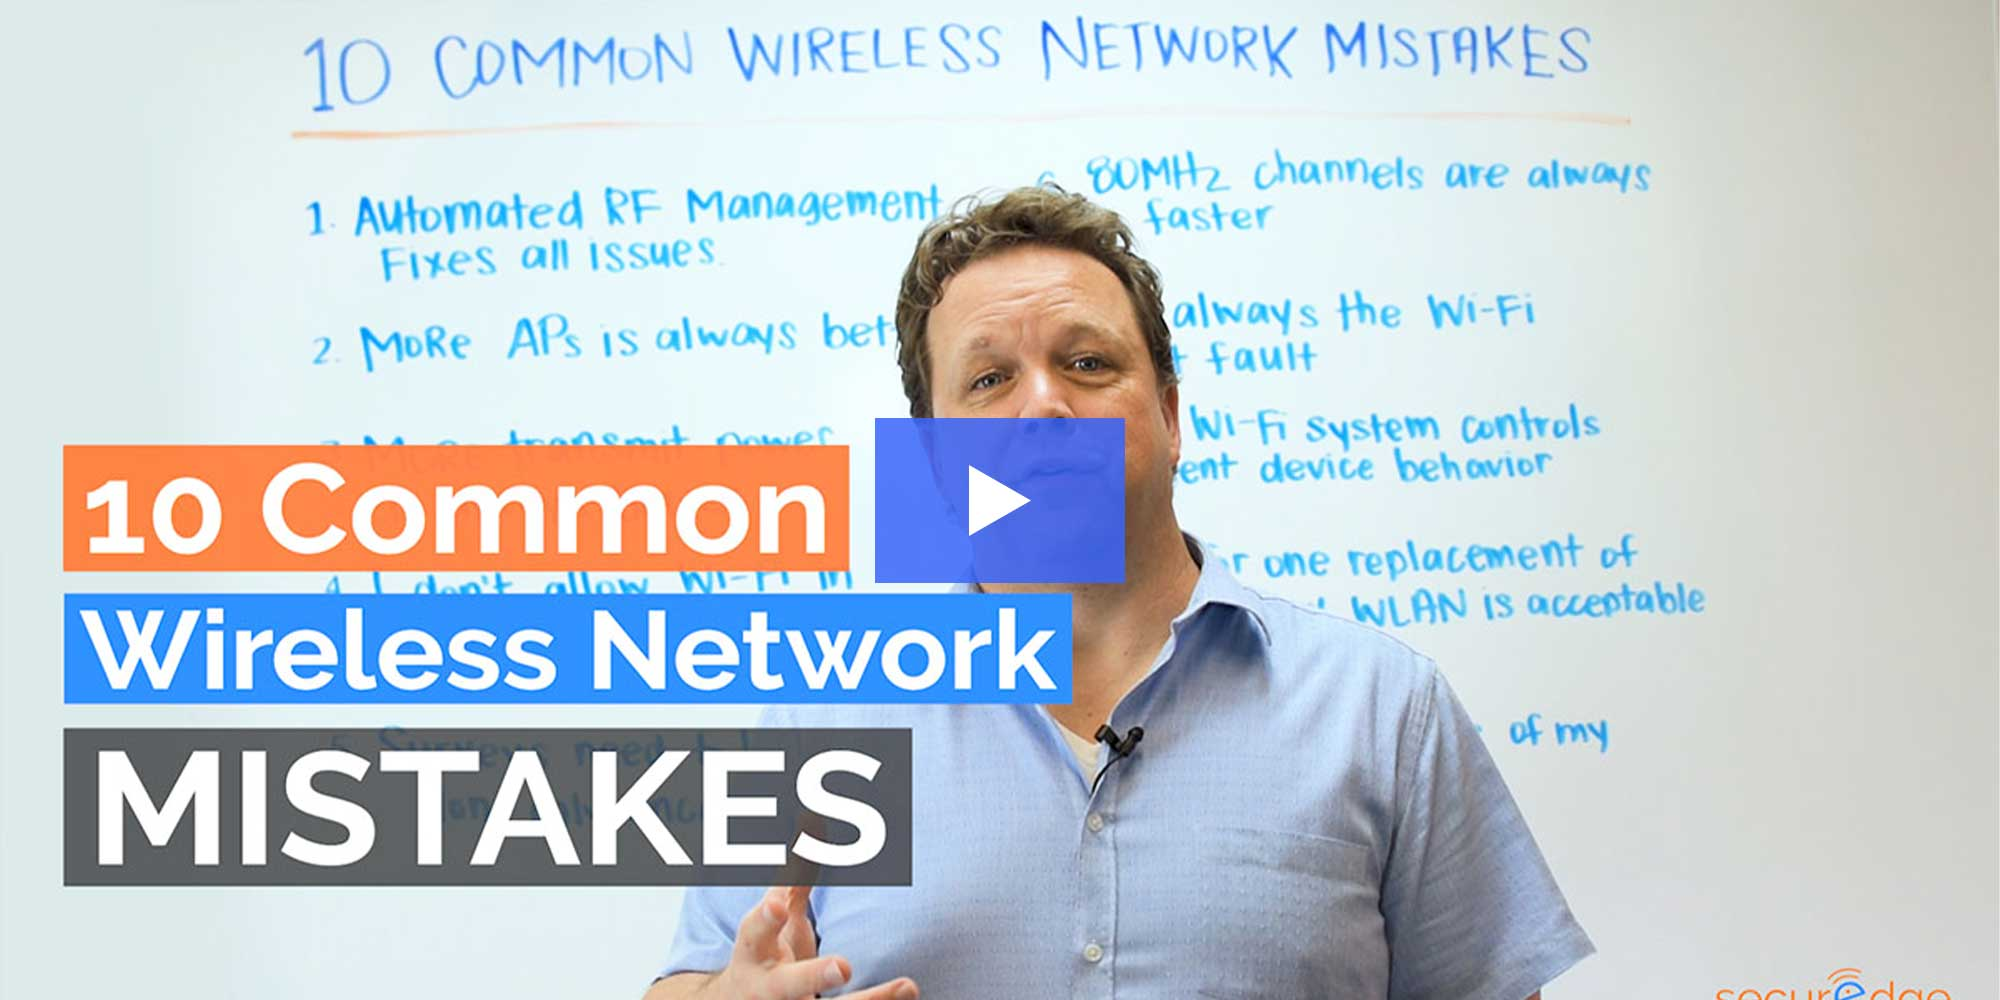 10-Common-Wireless-Network-Mistakes-FINAL